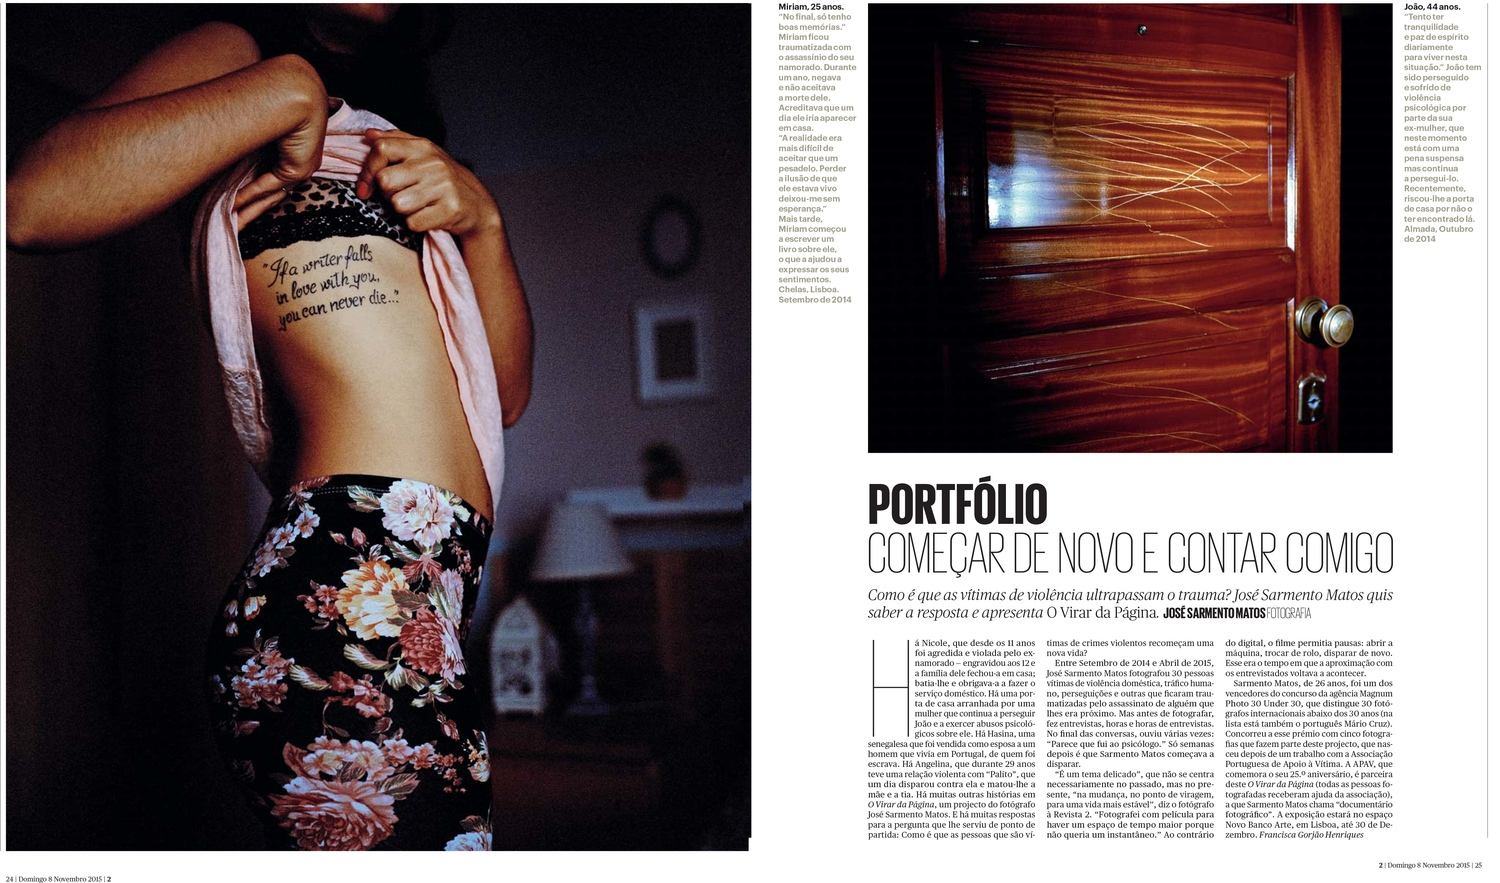 Turning the Page featured in 2 magazine. Público.